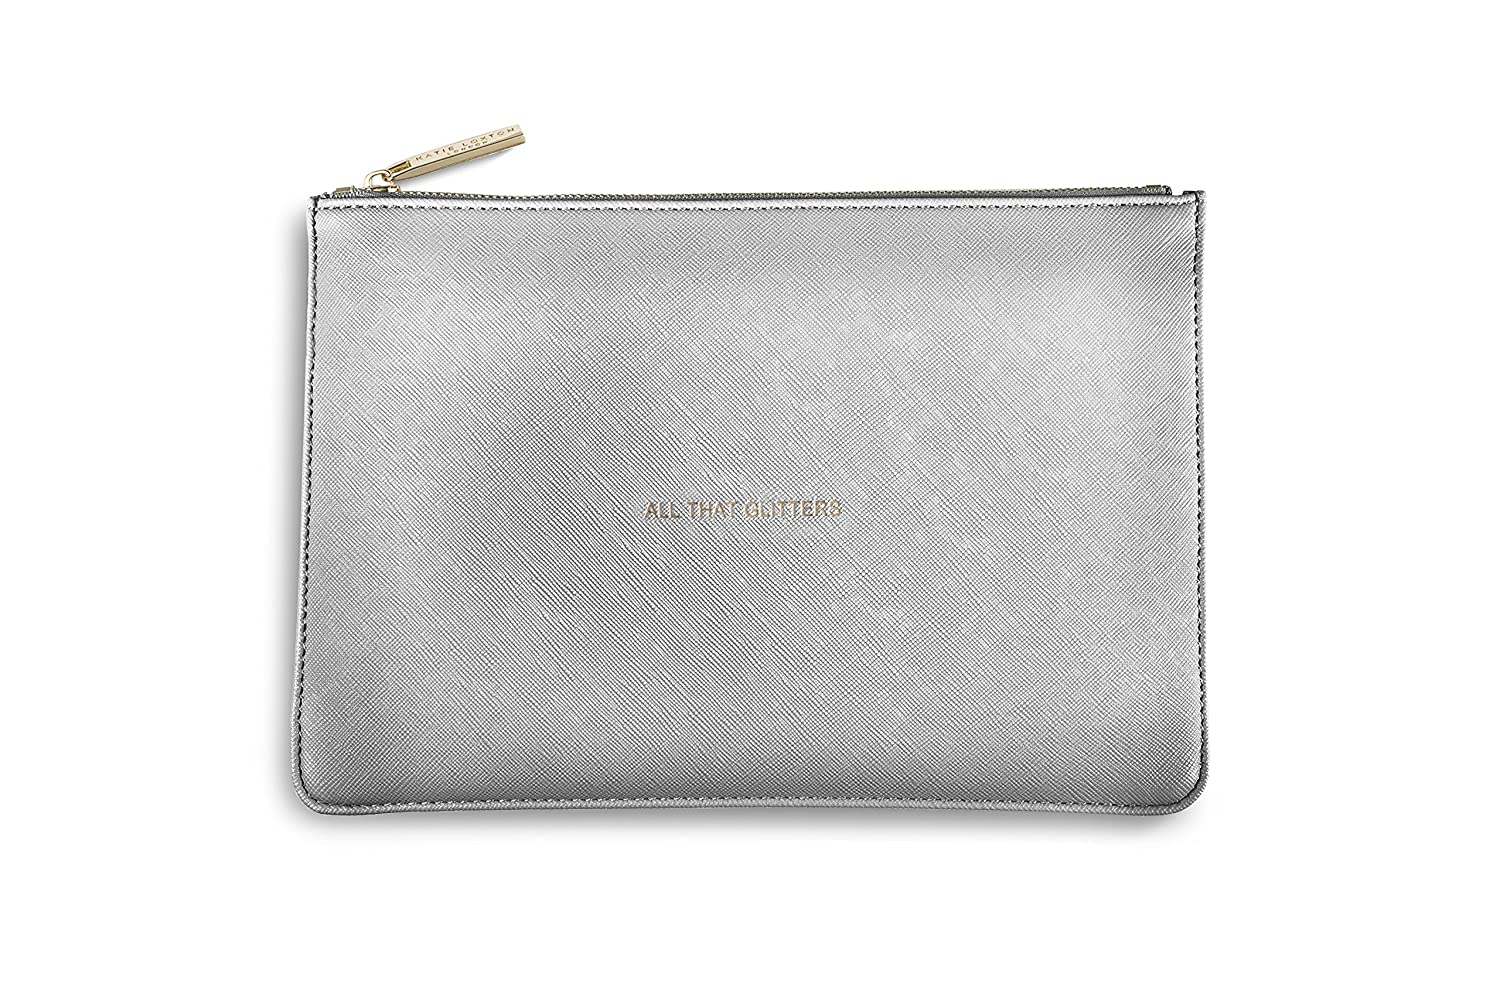 Silver leather tote bag uk - Katie Loxton Perfect Pouch Clutch Bag Metallic Silver All That Glitters